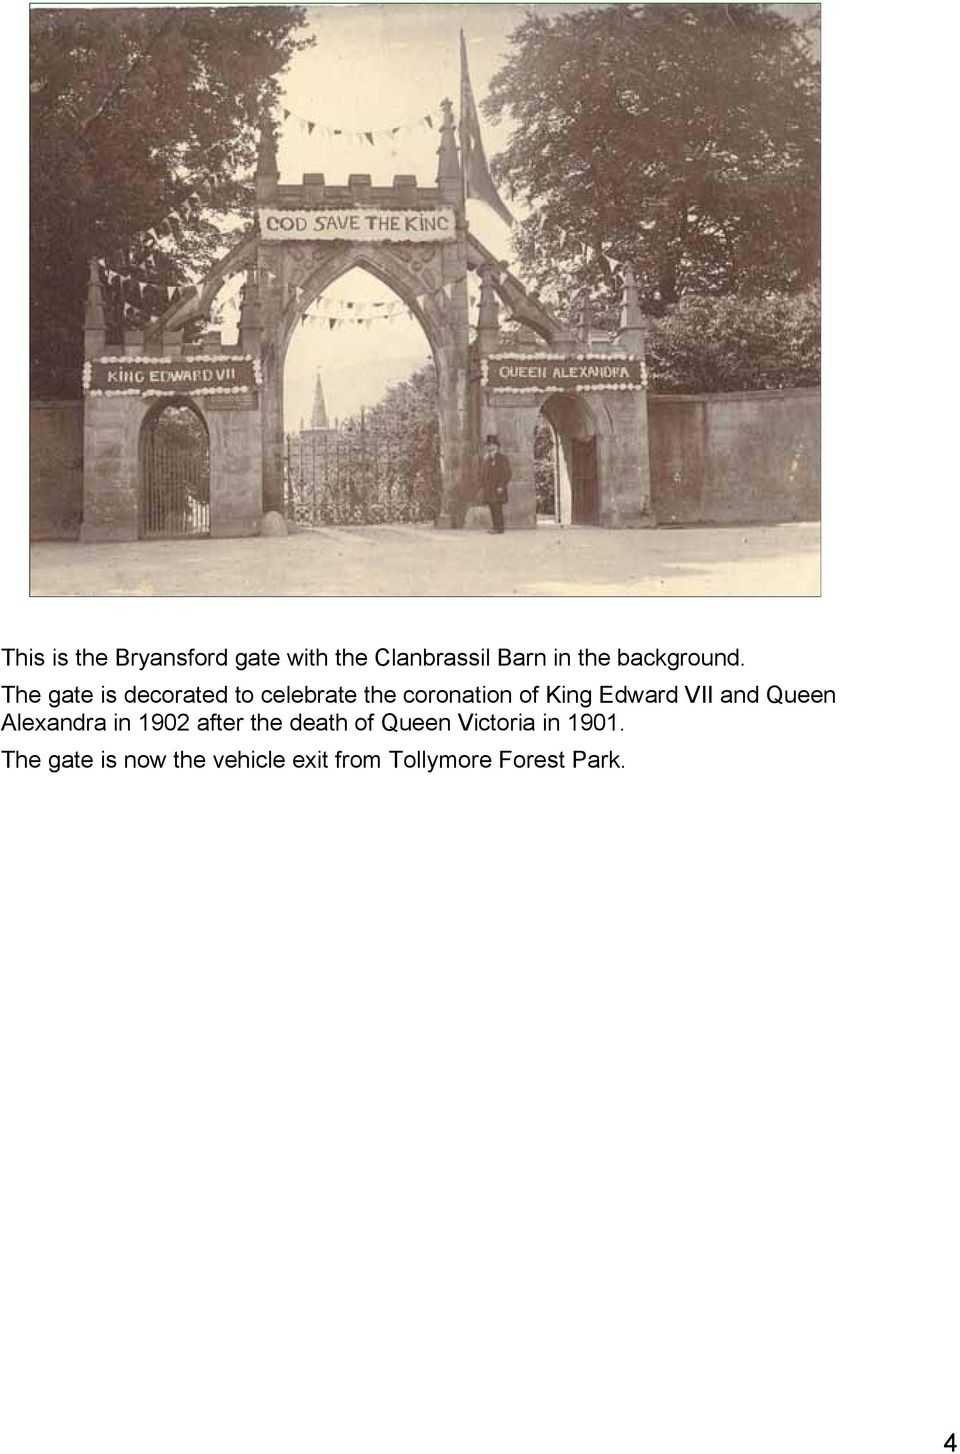 The gate is decorated to celebrate the coronation of King Edward VII